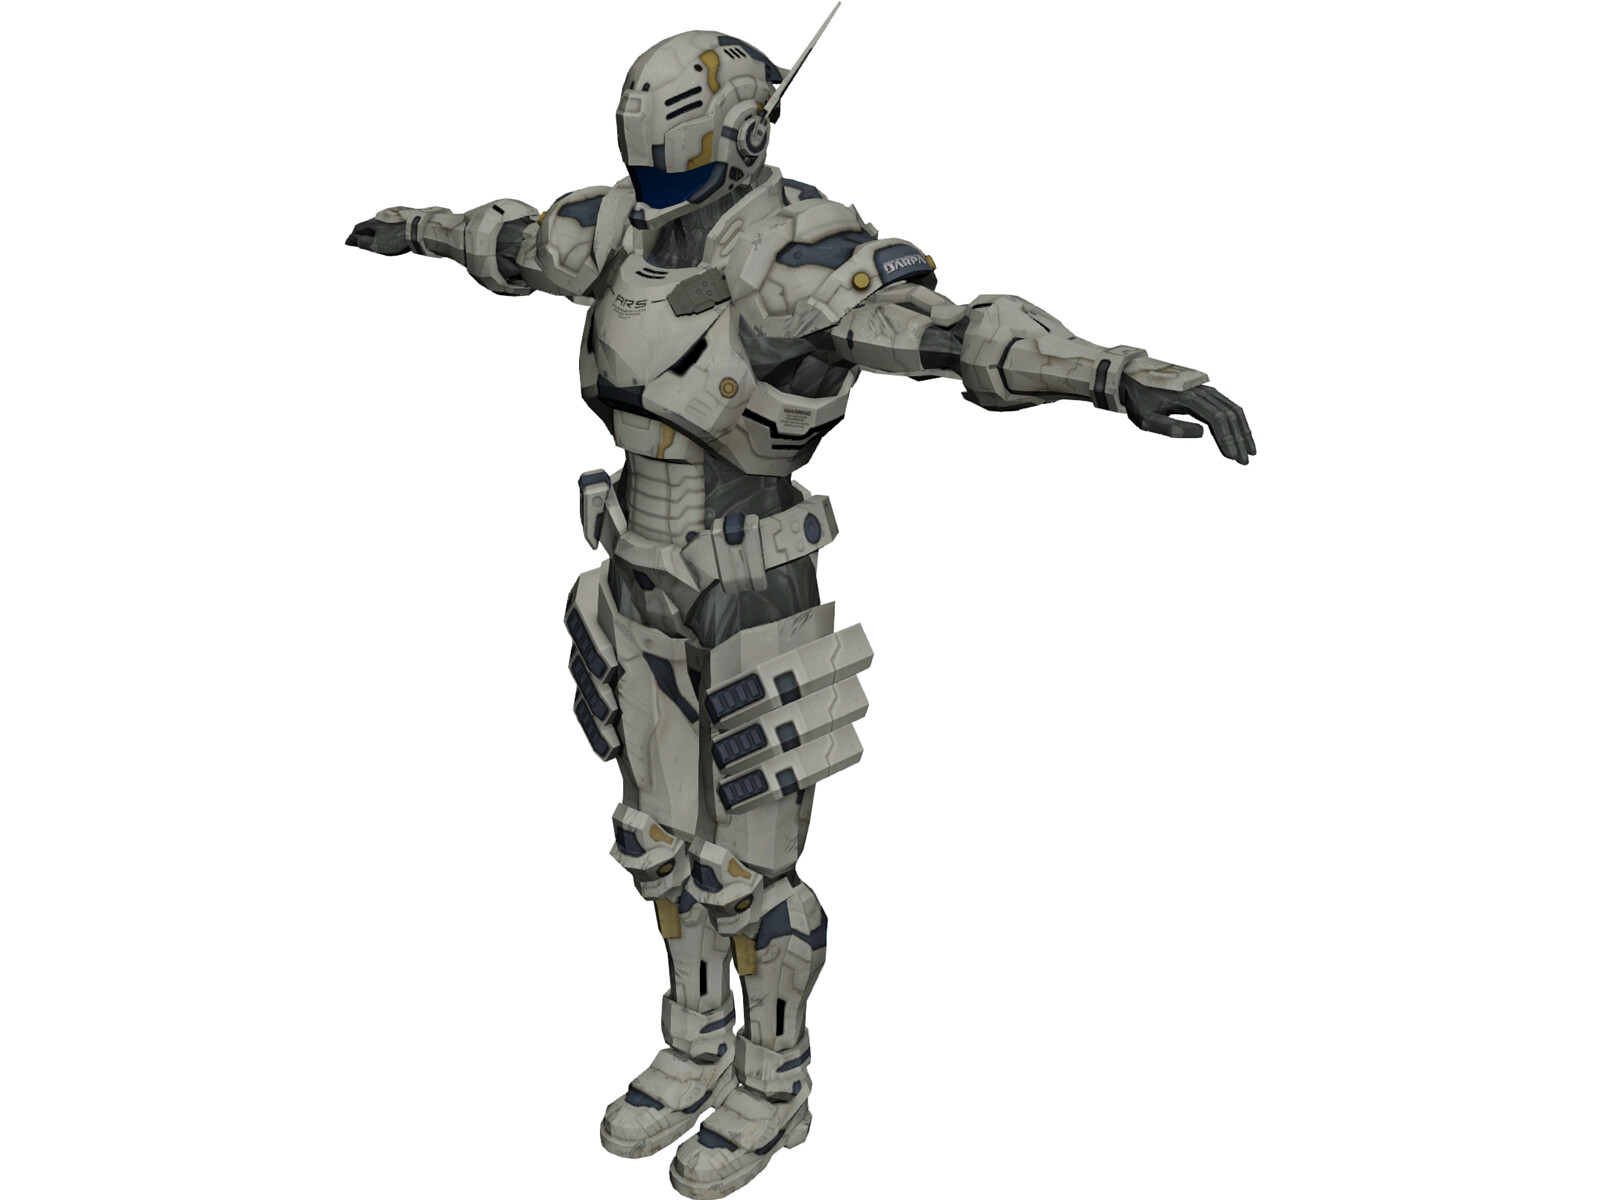 Vanquish Augmented Reaction Suit 3D Model - 3D CAD Browser